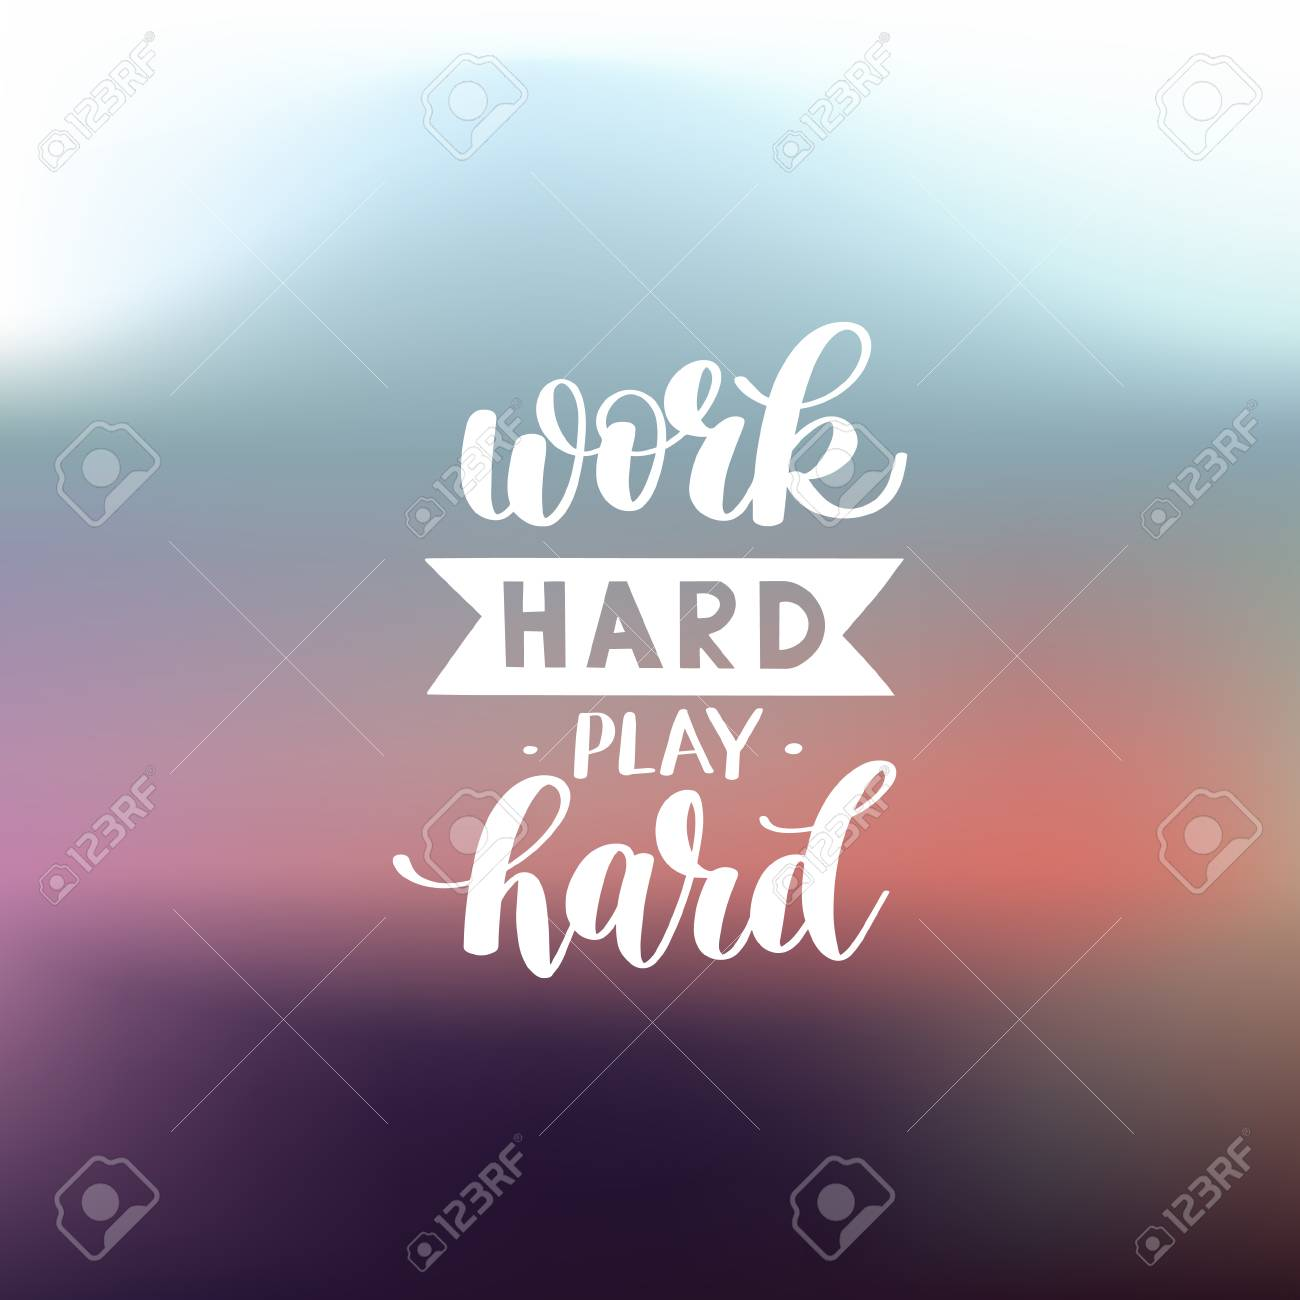 Work Hard Play Hard motivational quote